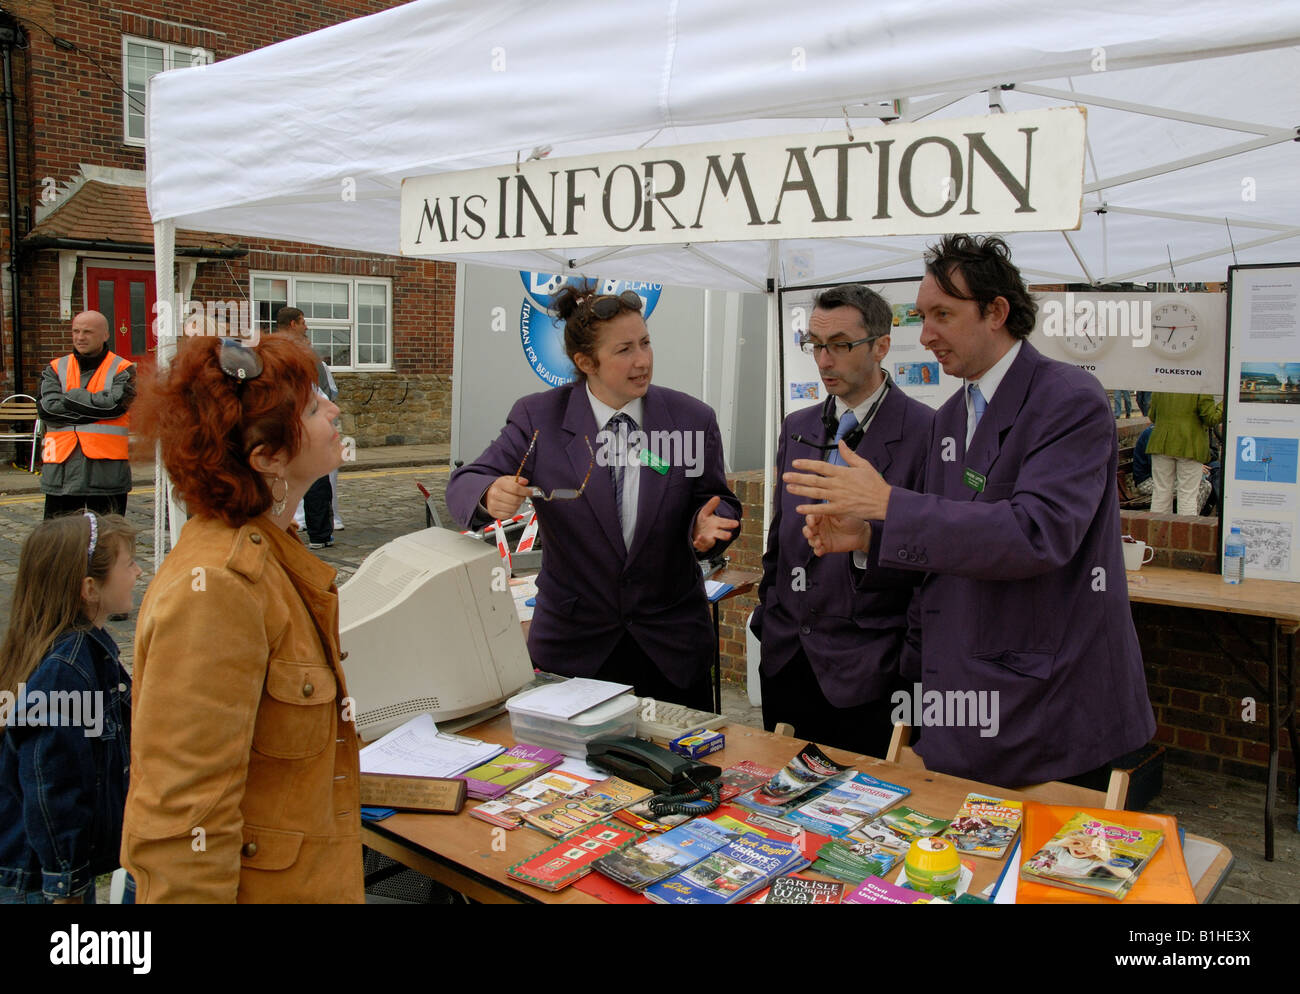 The Mis Information tent at the Folkestone Triennial arts festival - Stock Image